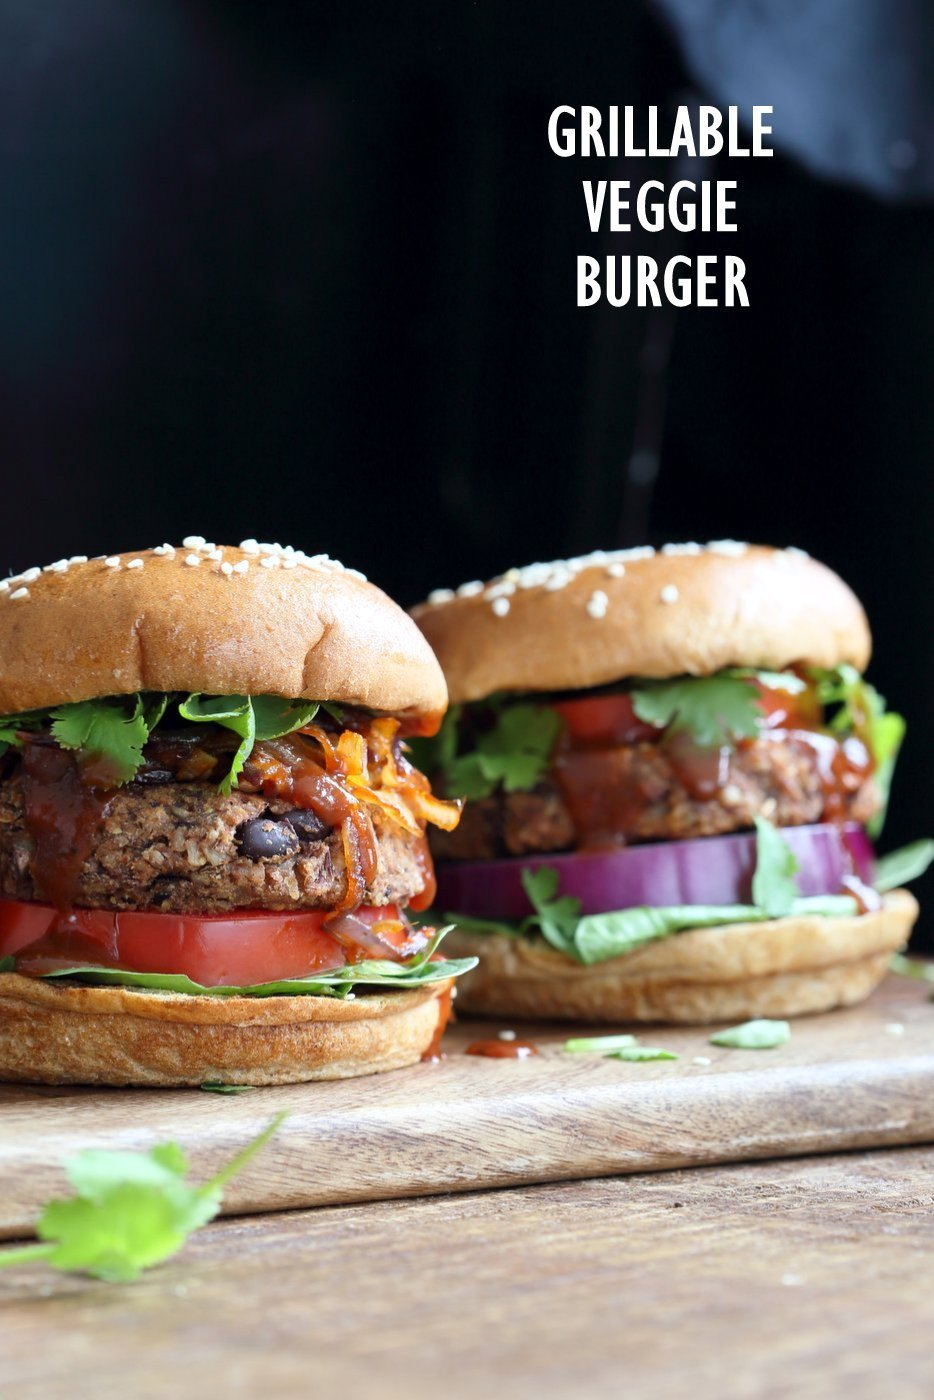 Grillable Veggie Burger. No Nuts. Easy Sunflower seed Black Bean Burger with Veggies and spices. Pan fry, Bake or Grill. Serve with BBQ Sauce and other fix ins. Vegan Burger Recipe. Gluten-free option. Nut-free. Soy-free option | VeganRicha.com